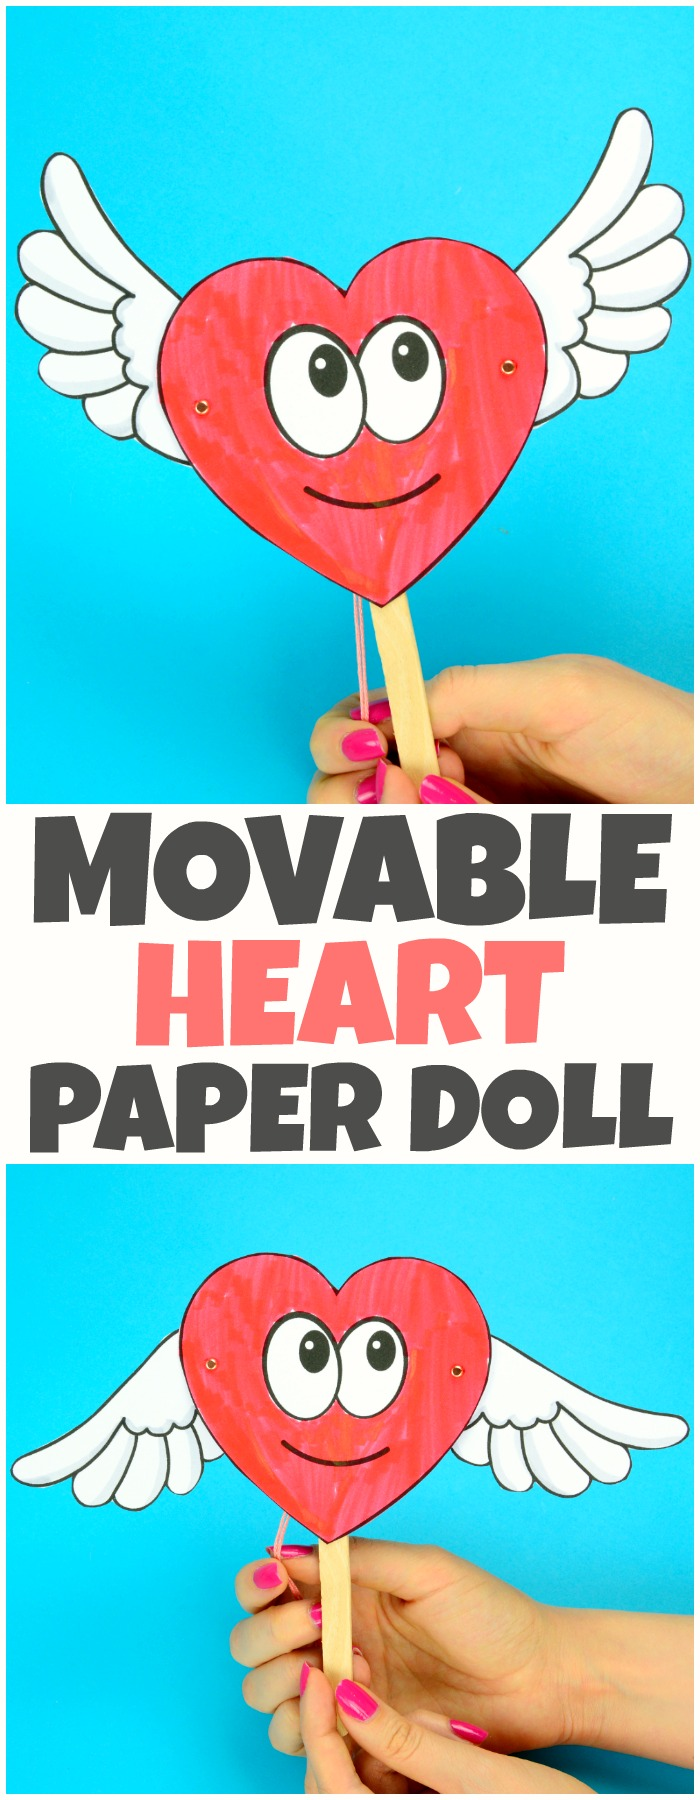 Movable Heart Paper Doll Valentines Day Craft for Kids #valentinesdaycraft #craftsforkids #papercrafts